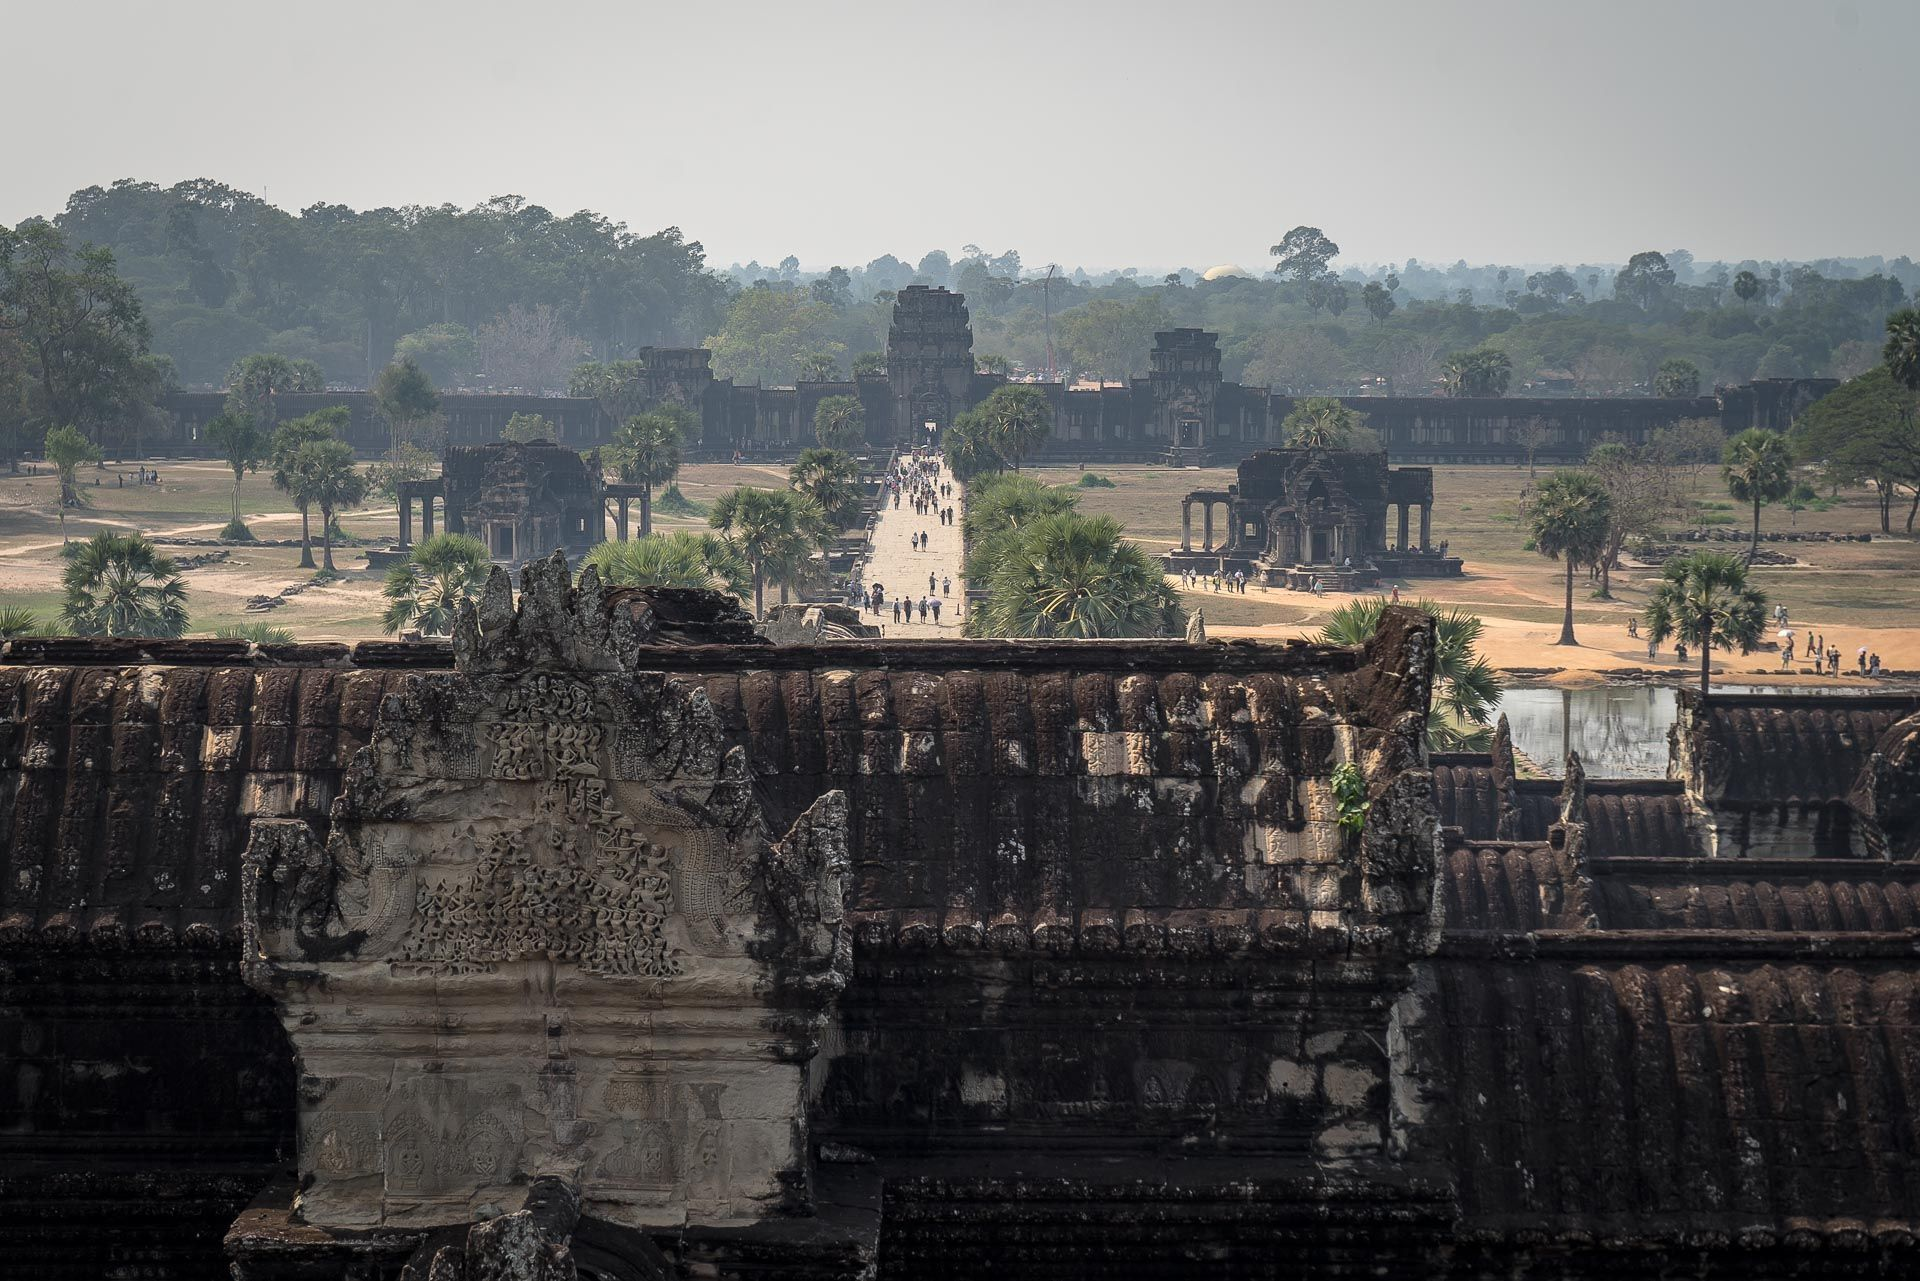 Lesvoyageuses-guide-voyage-Siem-reap-angkor-temples-Cambodge-10